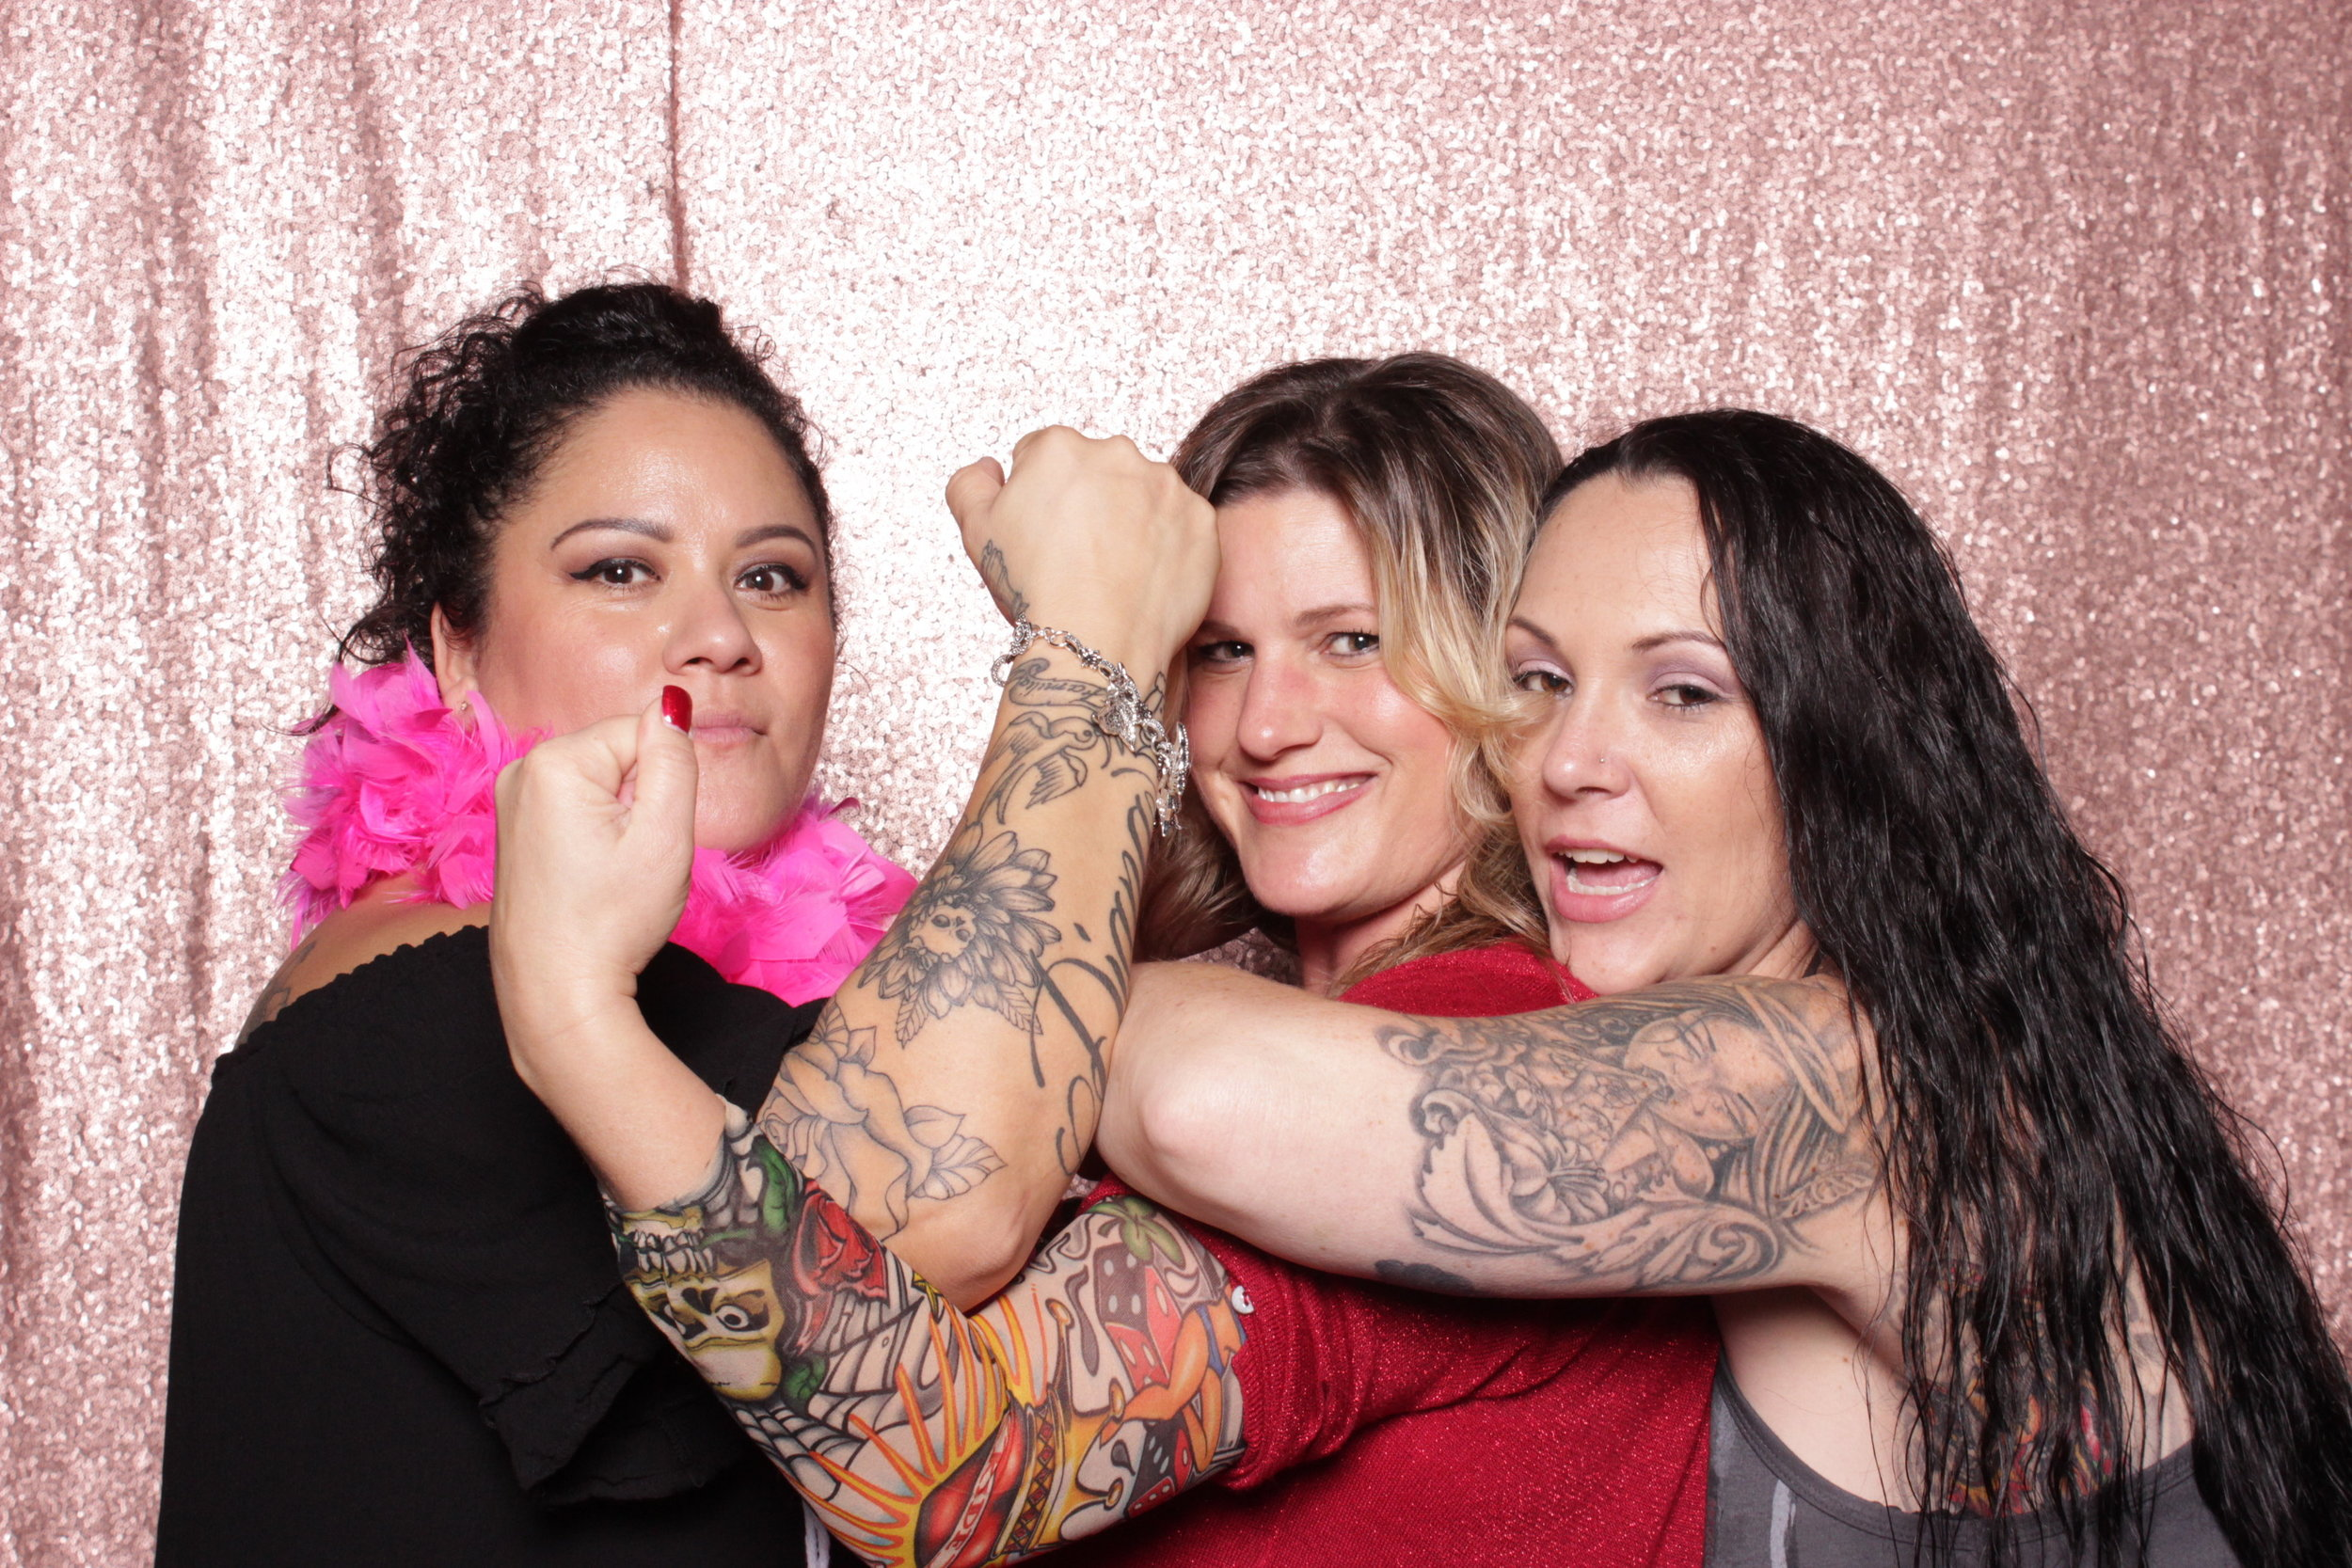 Chico-photo-booth-rental-event-hosting